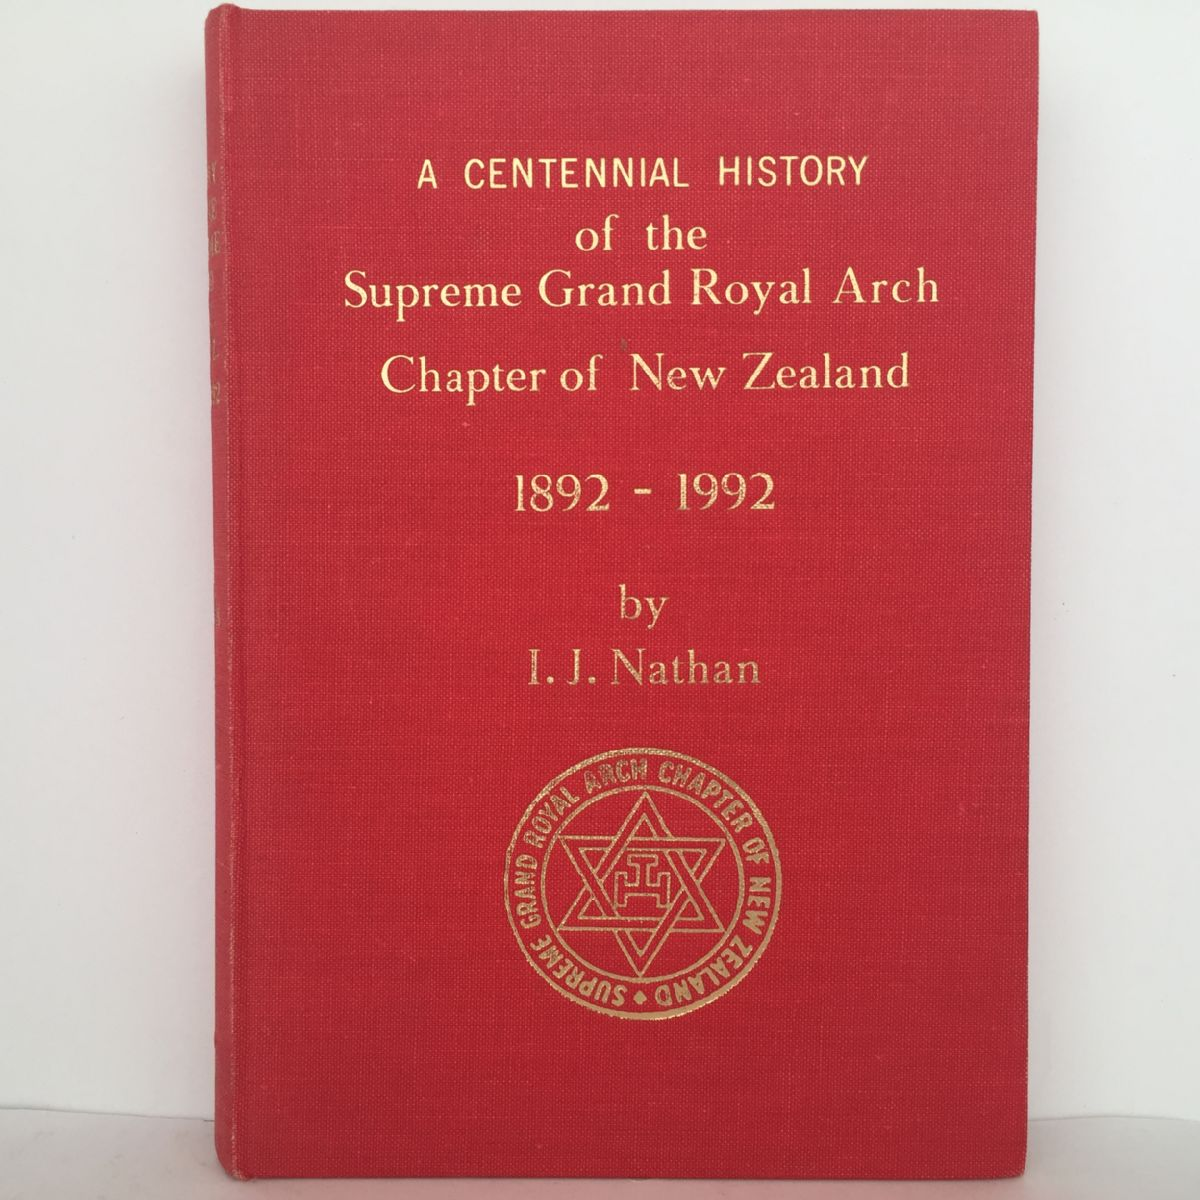 A Centennial History of the Supreme Grand Royal Arch Chapter of New Zealand 1892-1992